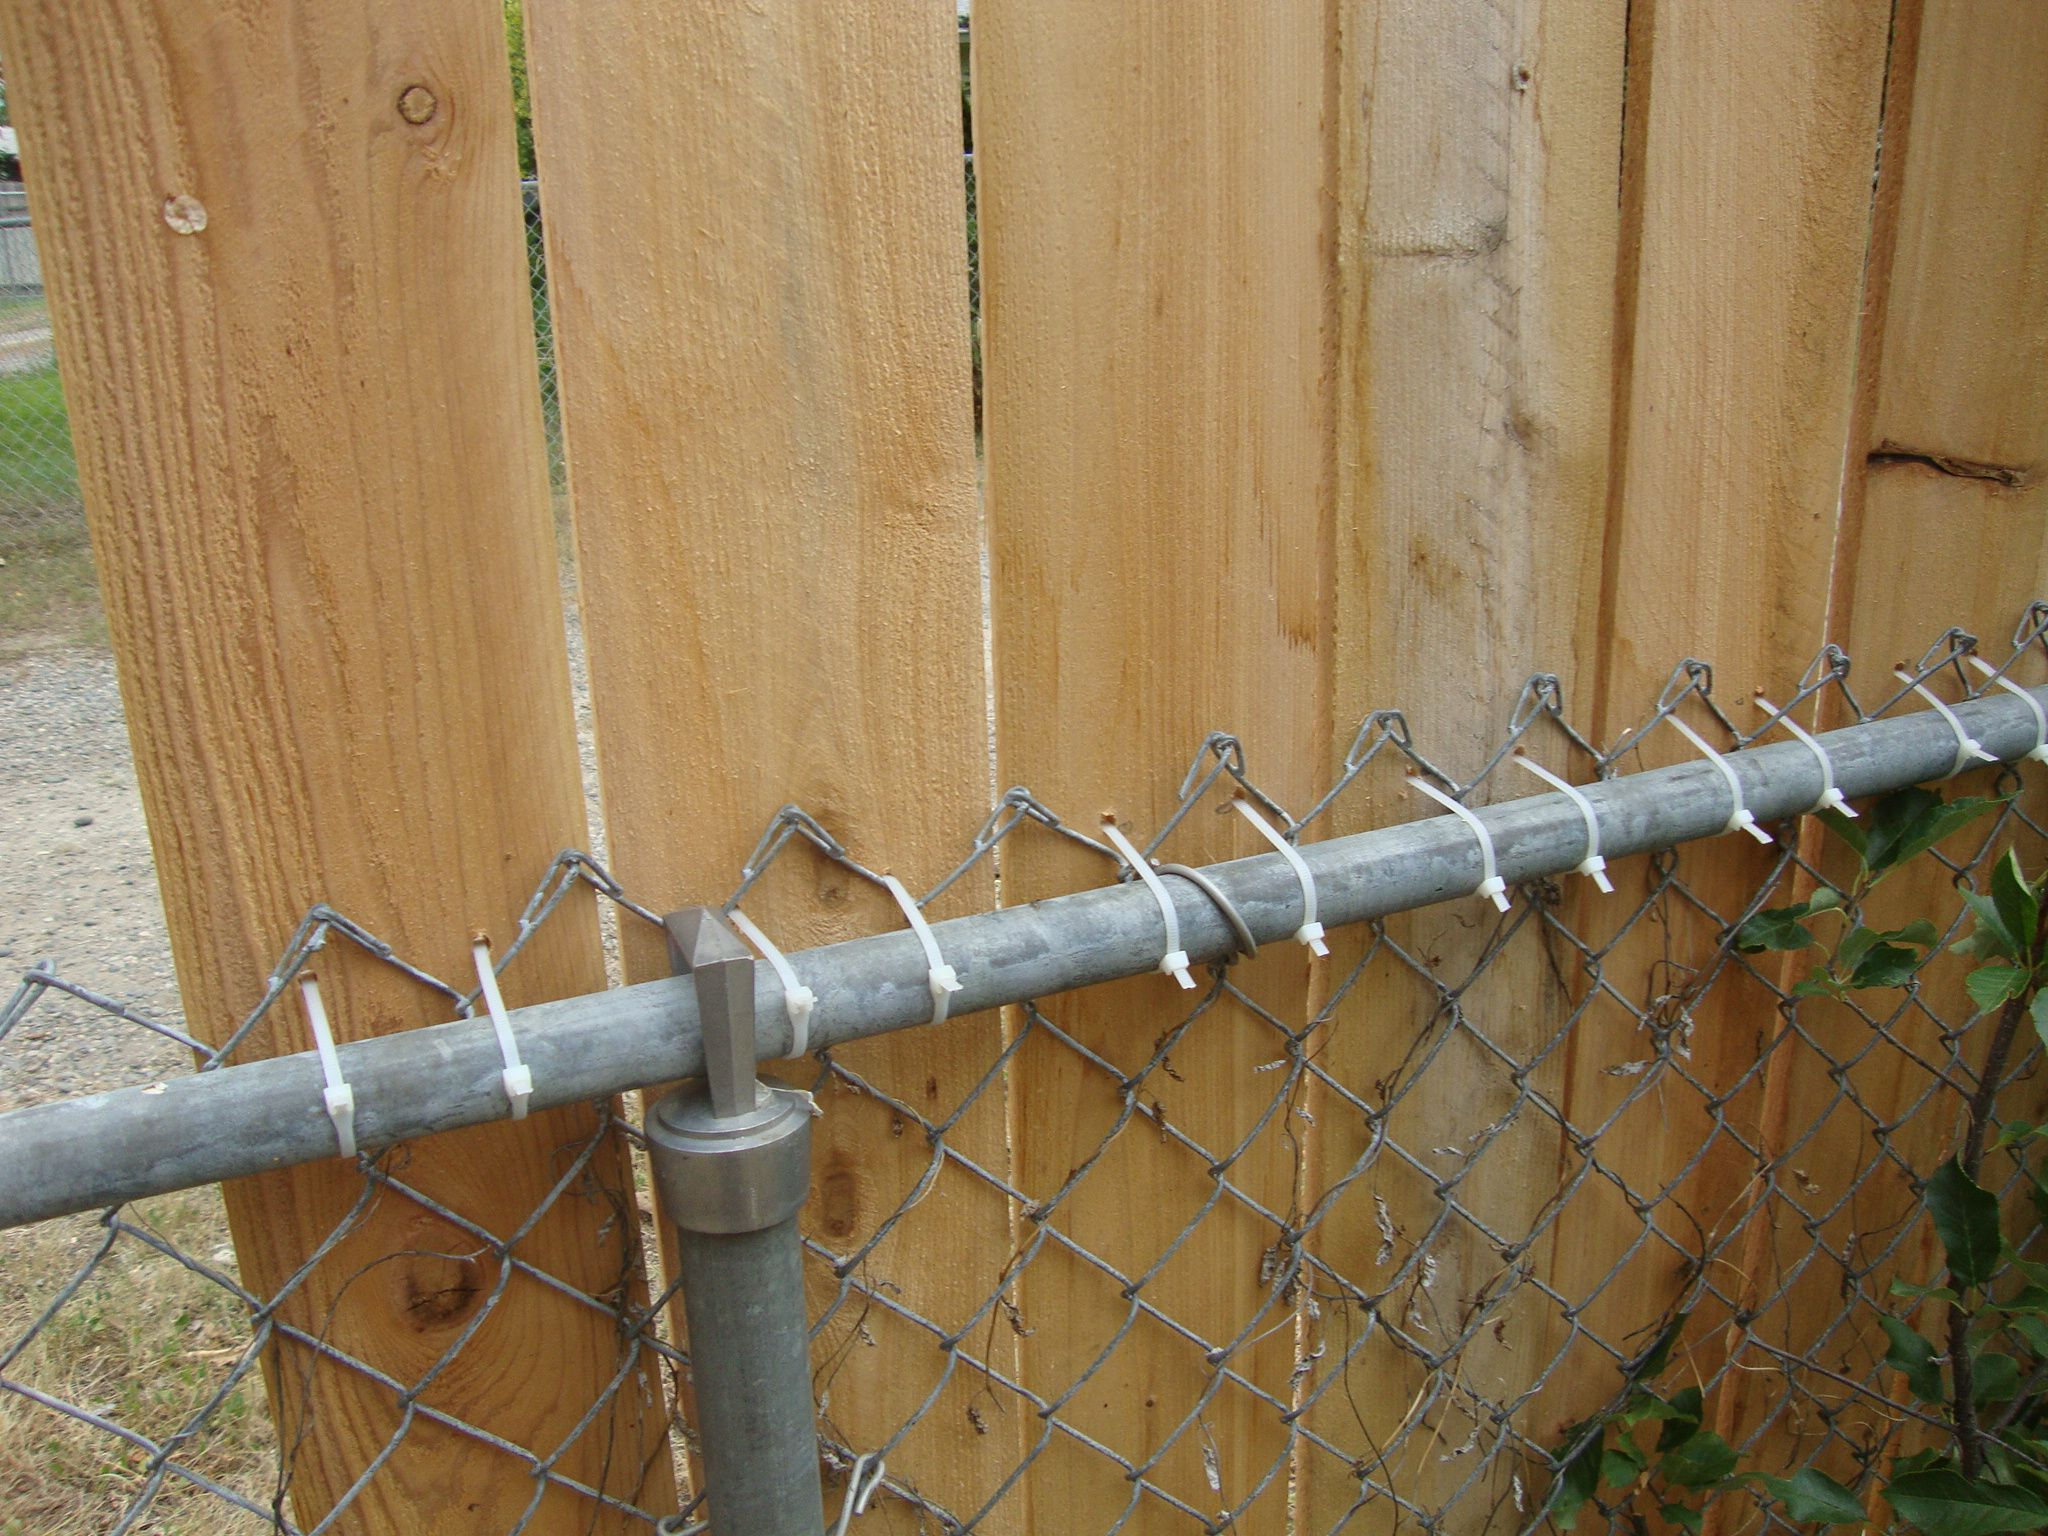 Best 25 black chain link fence ideas on pinterest fence ideas create a zip tie fence zip tie cedar planks to a chain link fence for baanklon Images